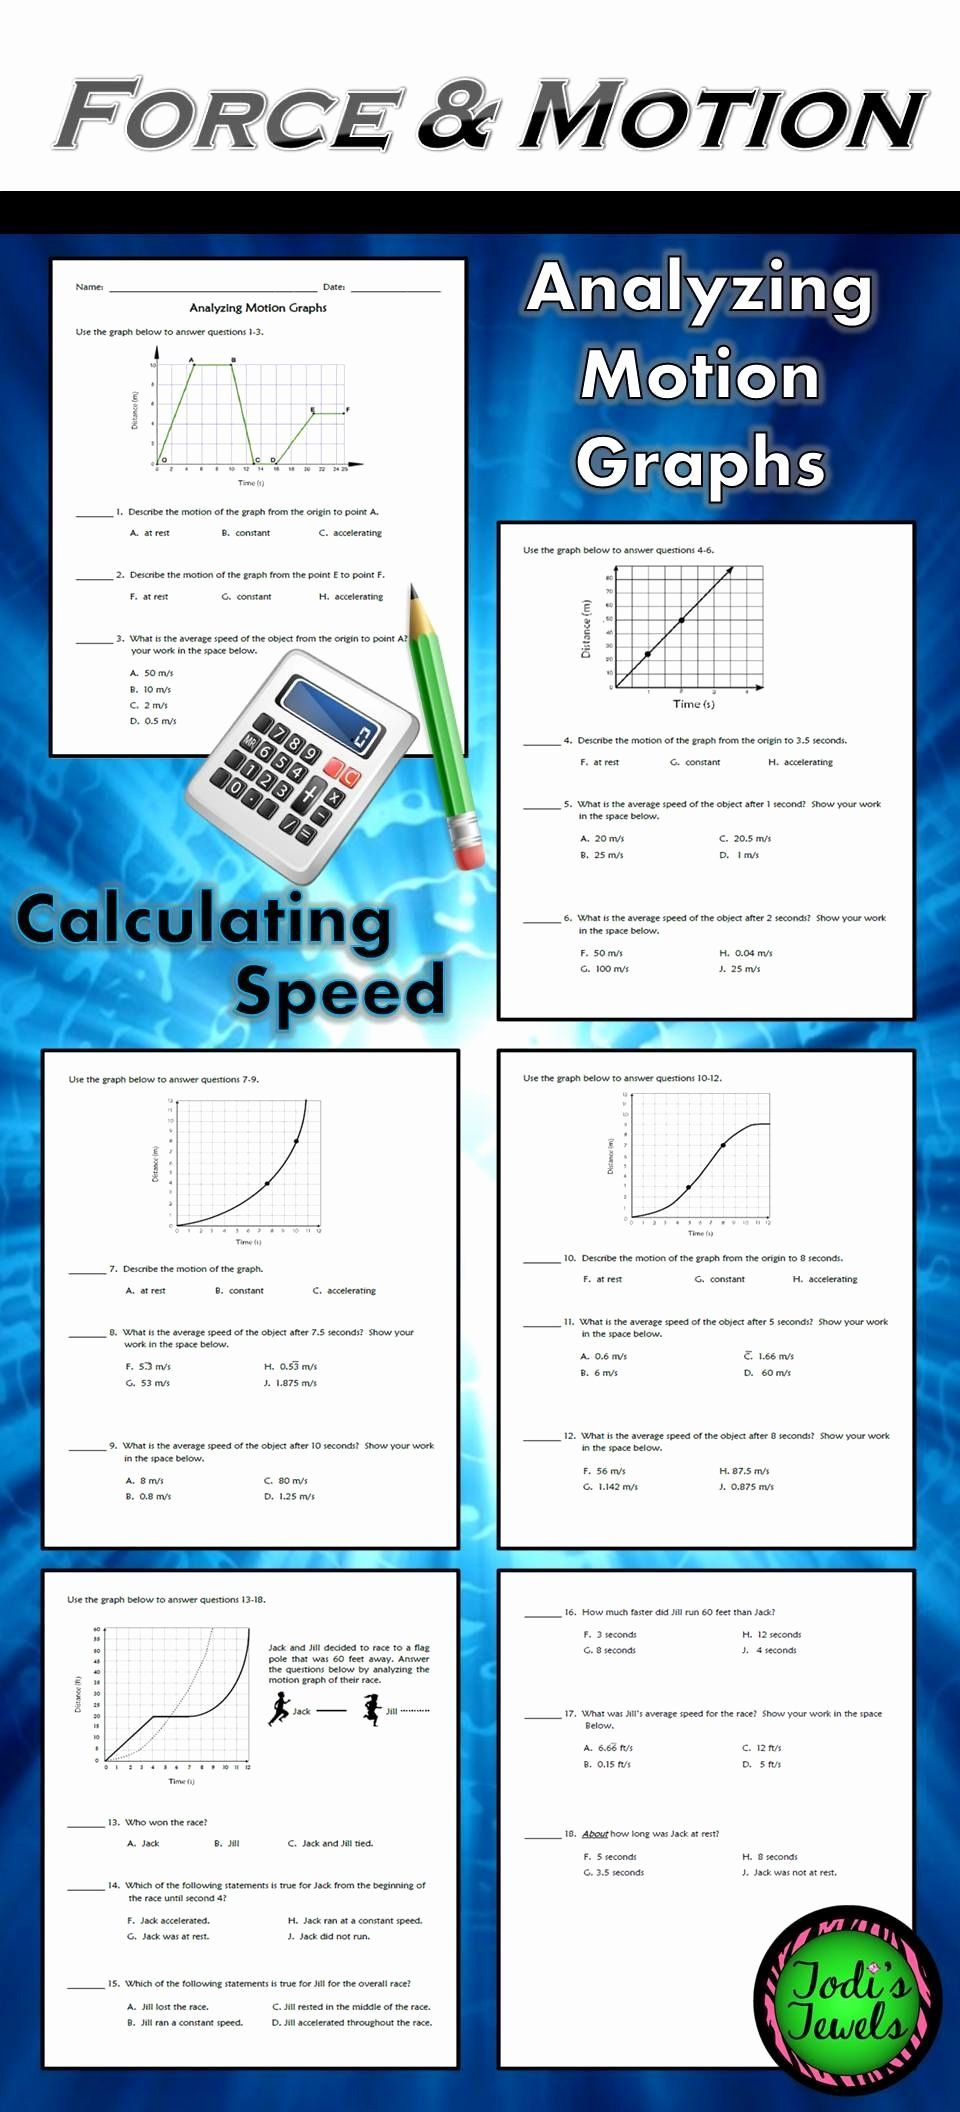 Interpreting Motion Graphs Worksheet Answers Beautiful Analyzing Motion Graphs Calc In 2020 Physical Science Physical Science Middle School Physical Science Projects